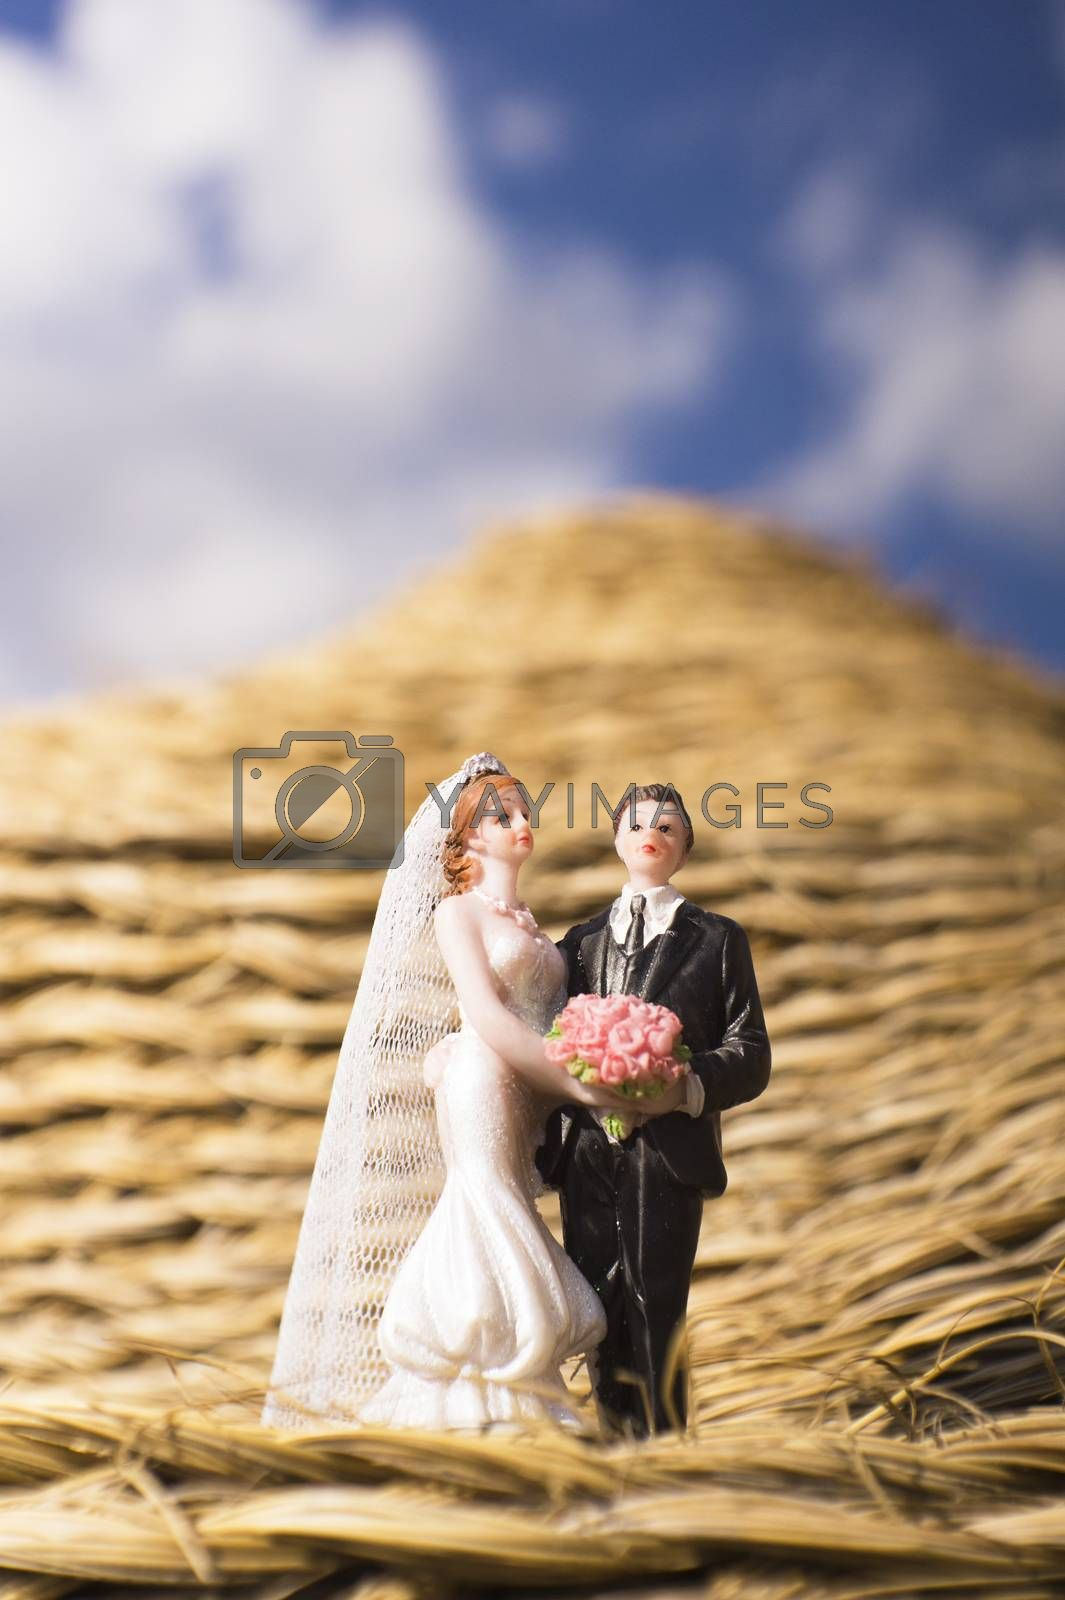 Standard figure of wedding couple on straw in a farm. No people